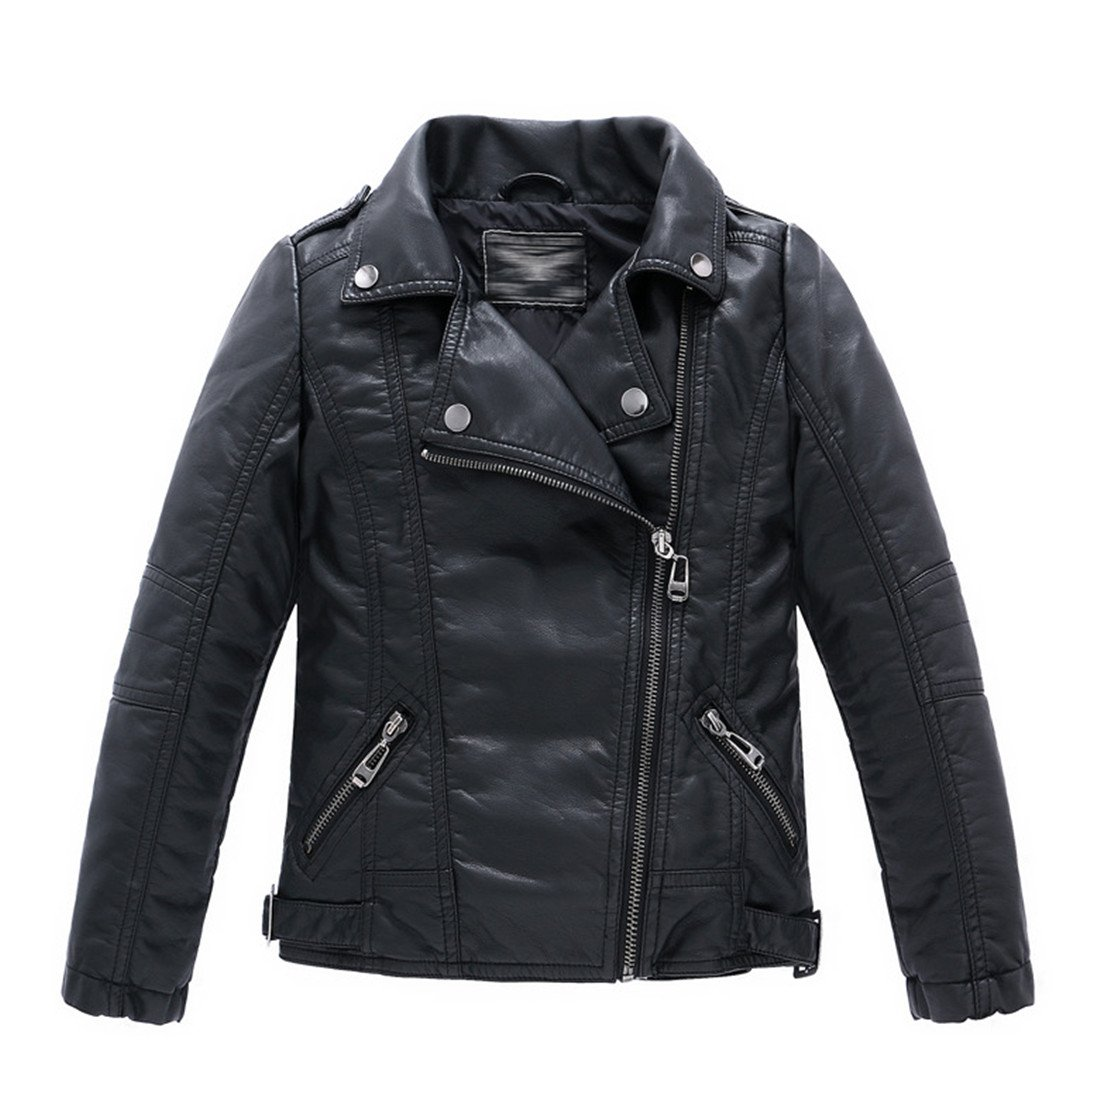 LJYH Children's Collar Motorcycle Leather Coat Boys Leather Jacket Black 7/8 (130)